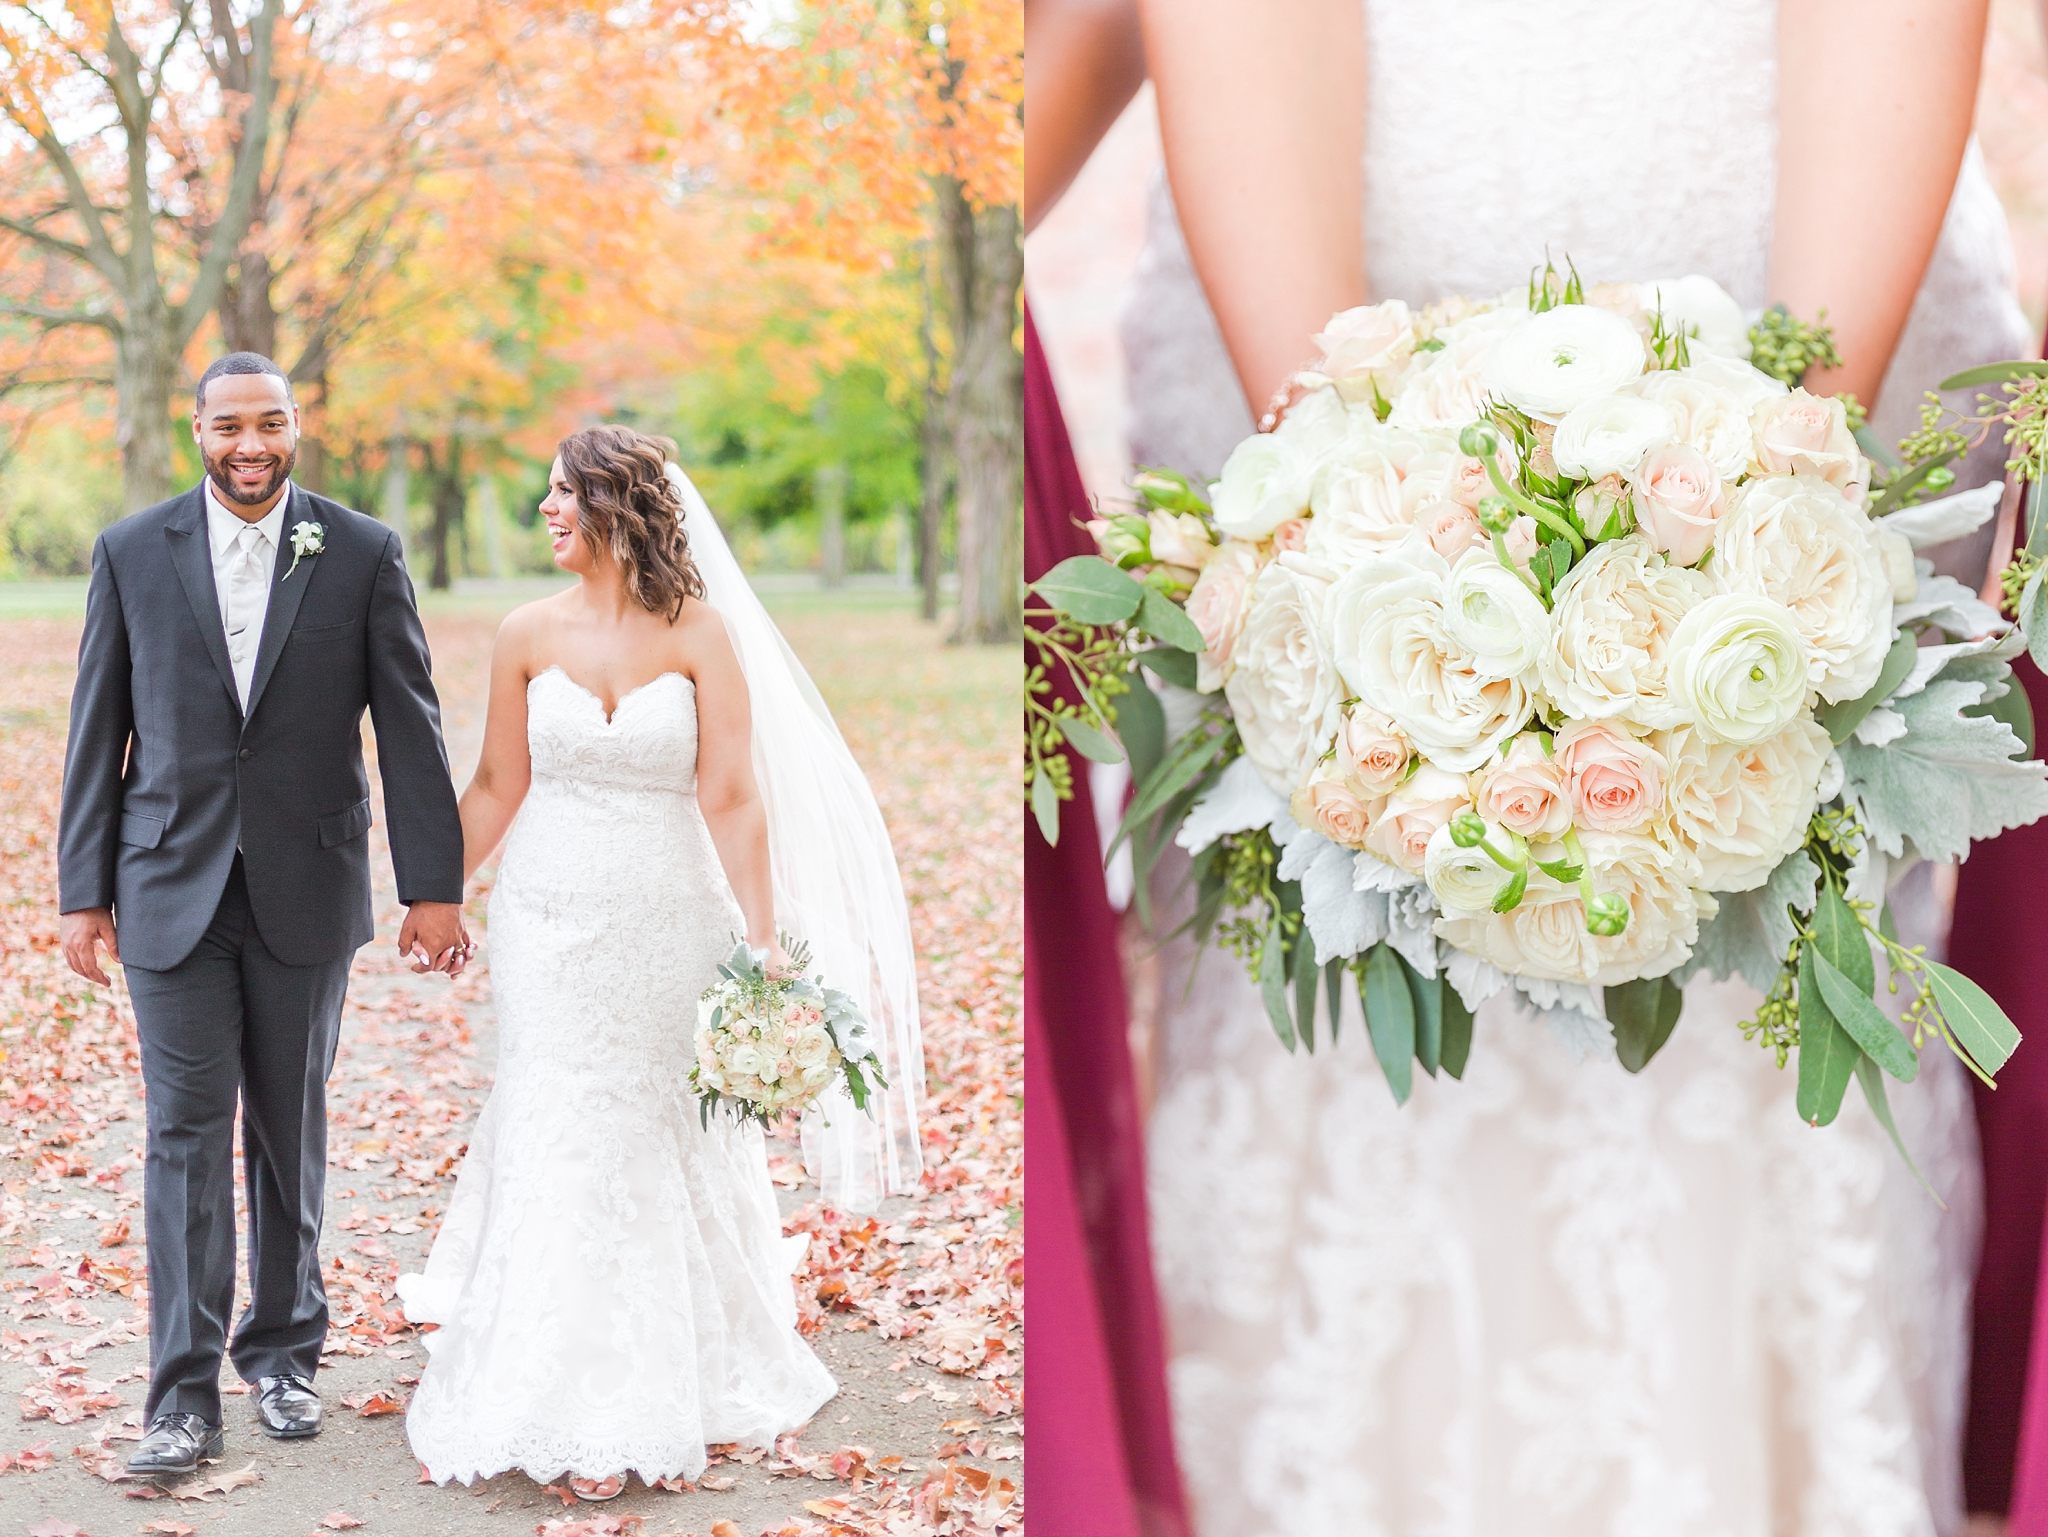 romantic-artful-candid-wedding-photos-in-detroit-lansing-ann-arbor-northern-michigan-and-chicago-by-courtney-carolyn-photography_0014.jpg